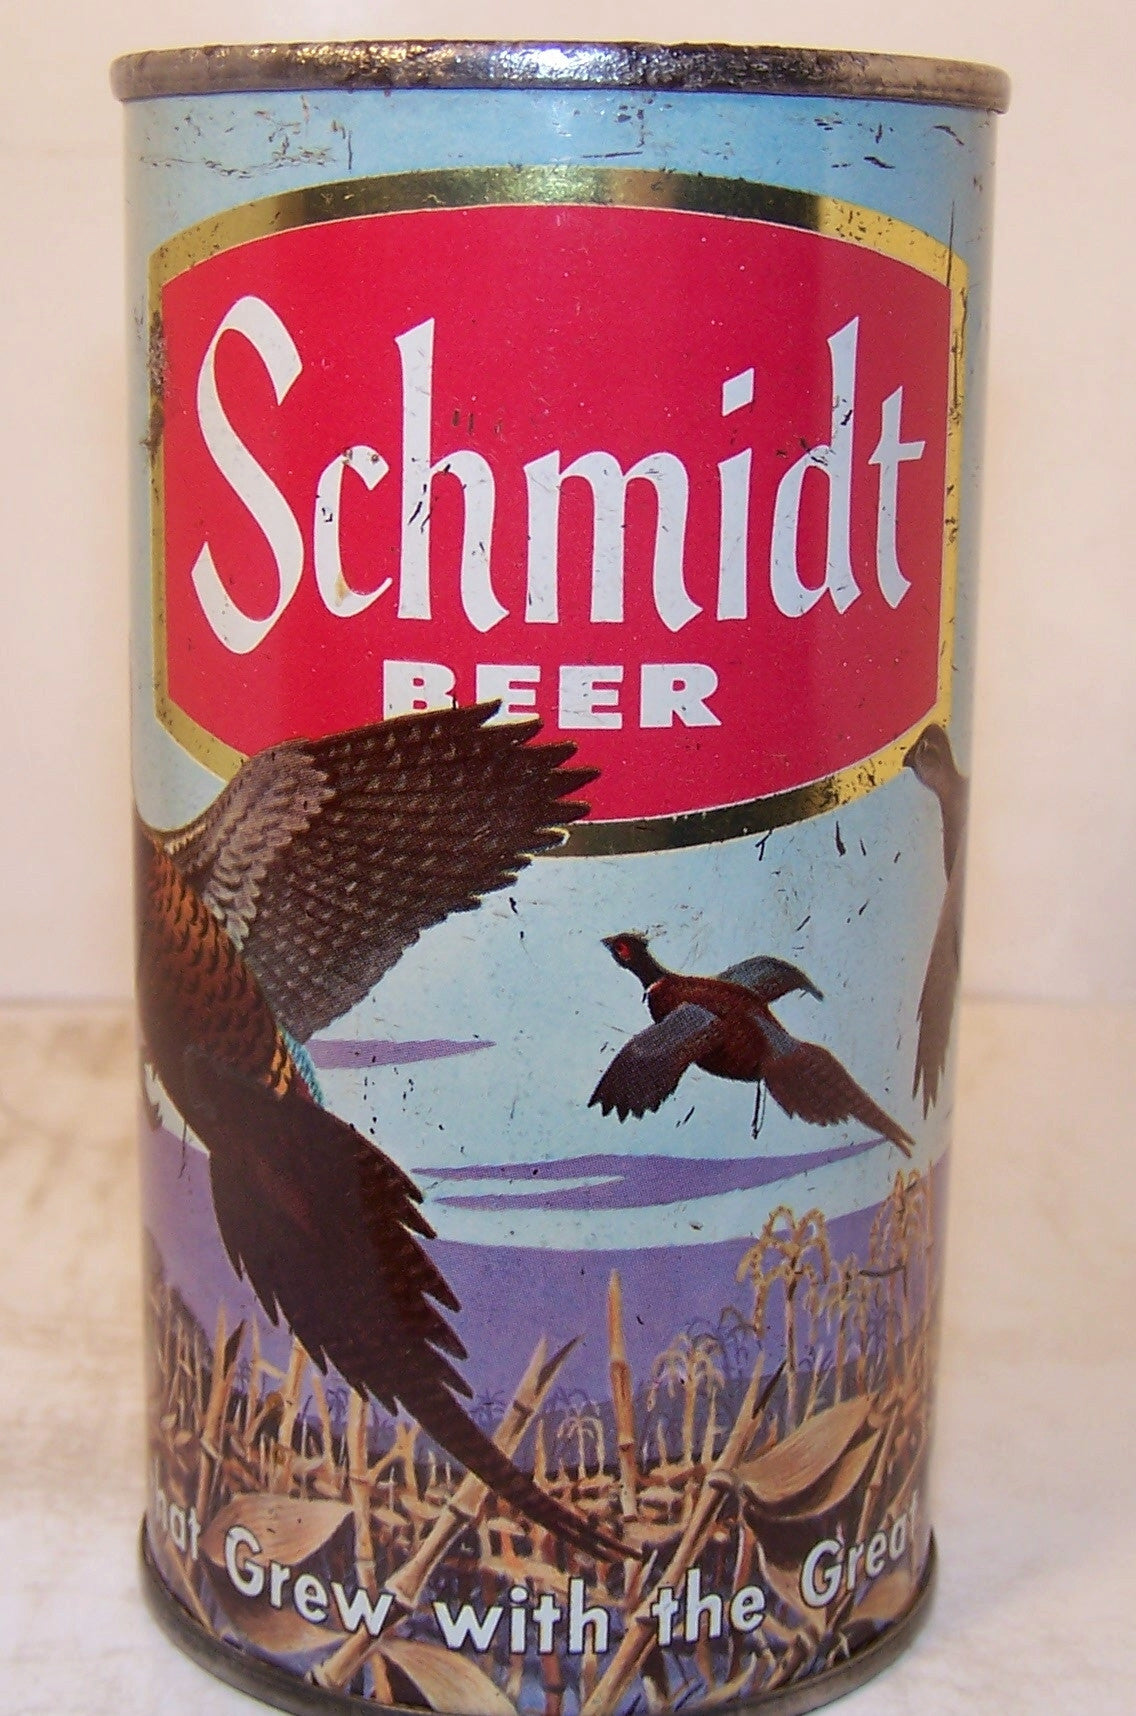 Schmidt Beer (Phesants) USBC 131-2, Grade 1-  Sold 1/5/15